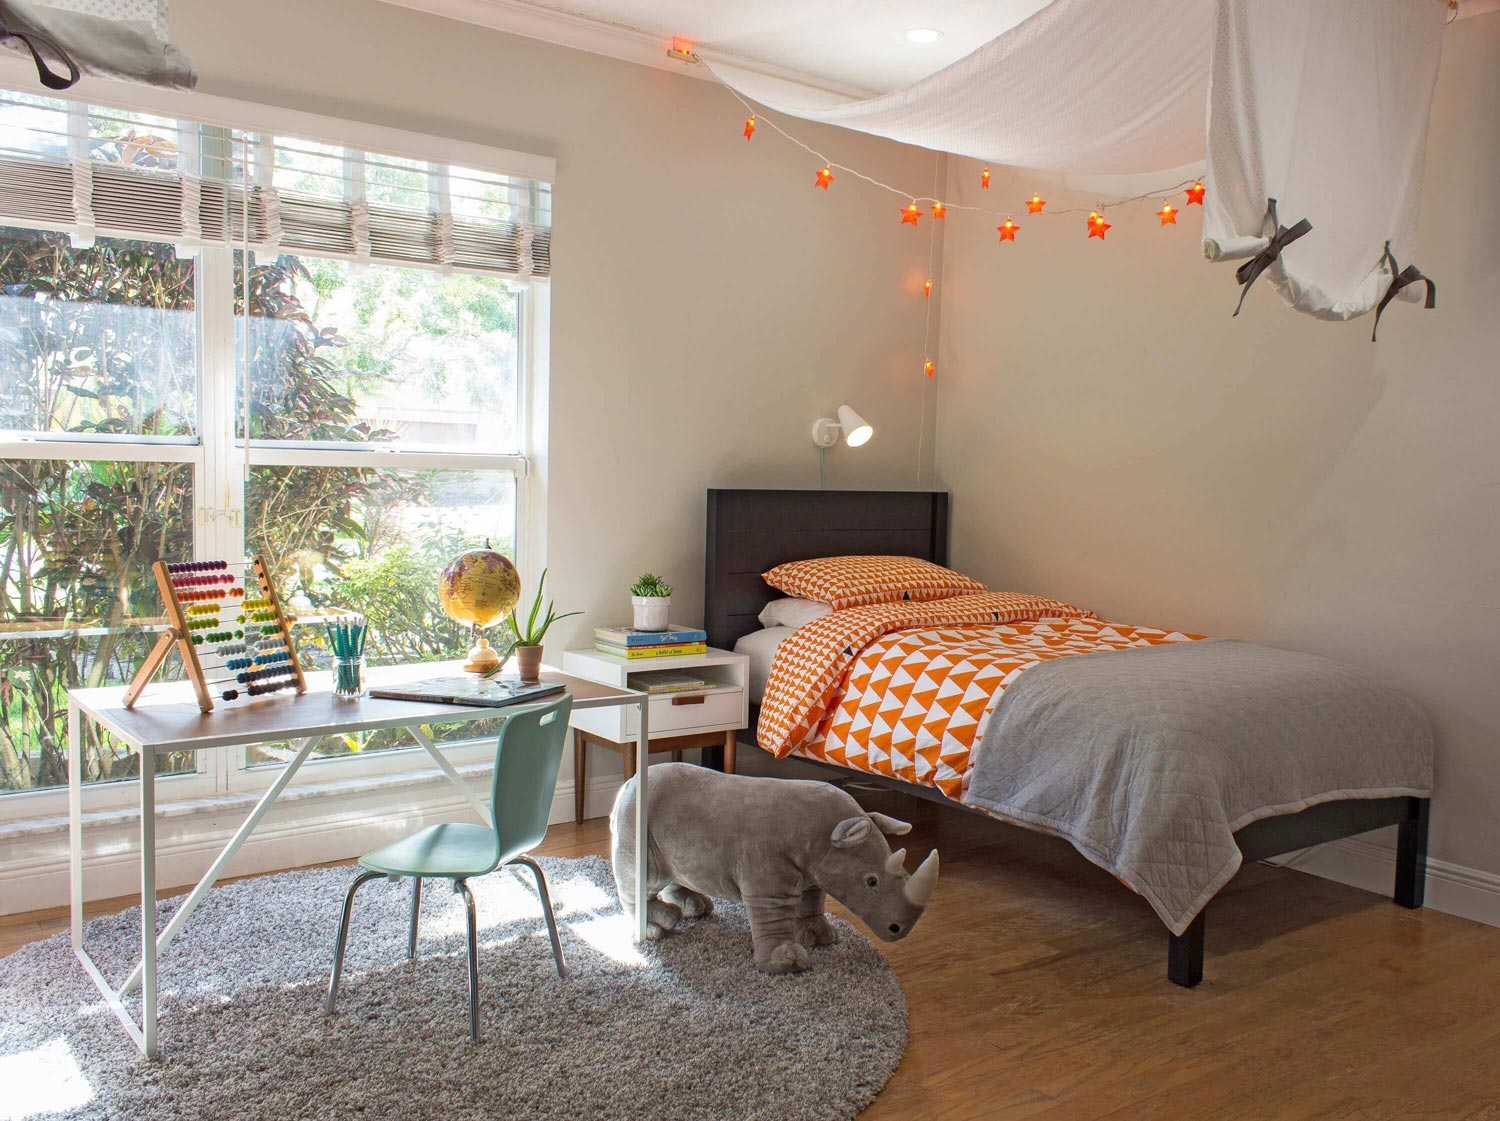 Design Reveal: Boy's Bedroom with Safari Inspiration